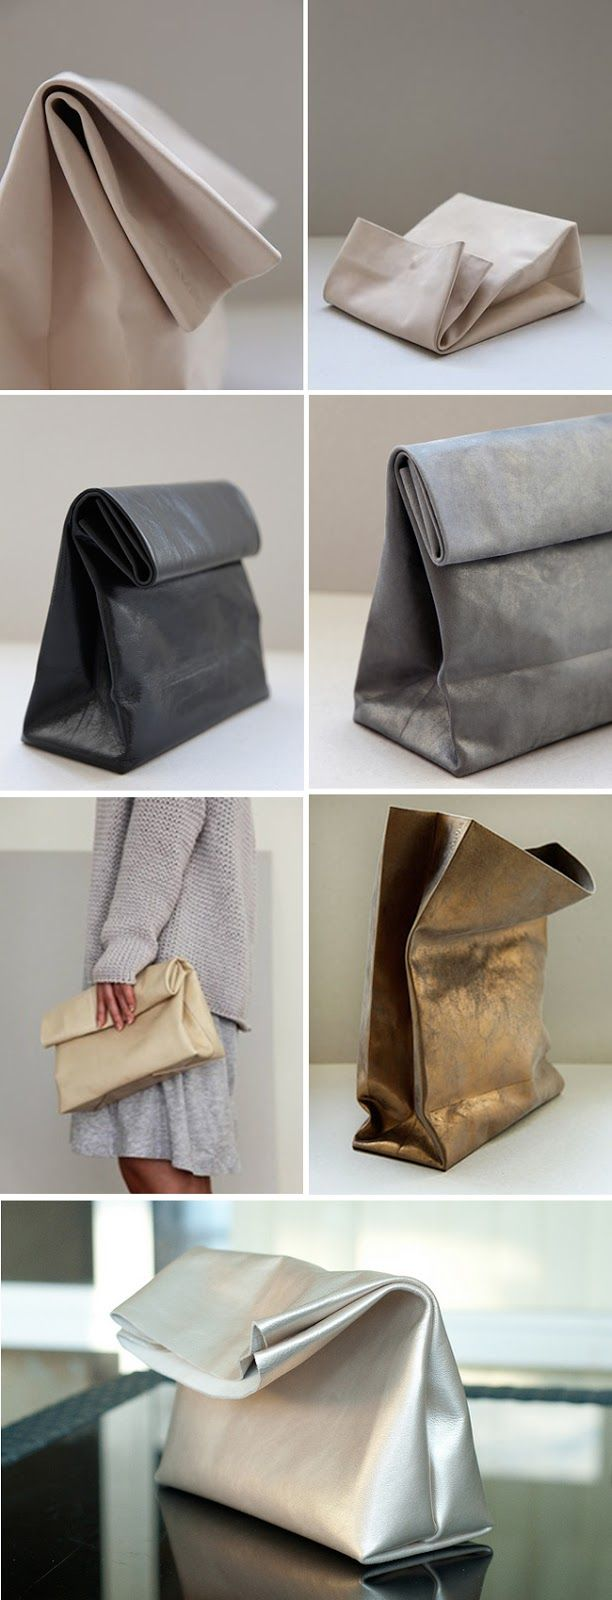 Leather paper bag clutches really caught my attention lately it brings me back to my childhood memorieswhen my mom use to pack my lunch...